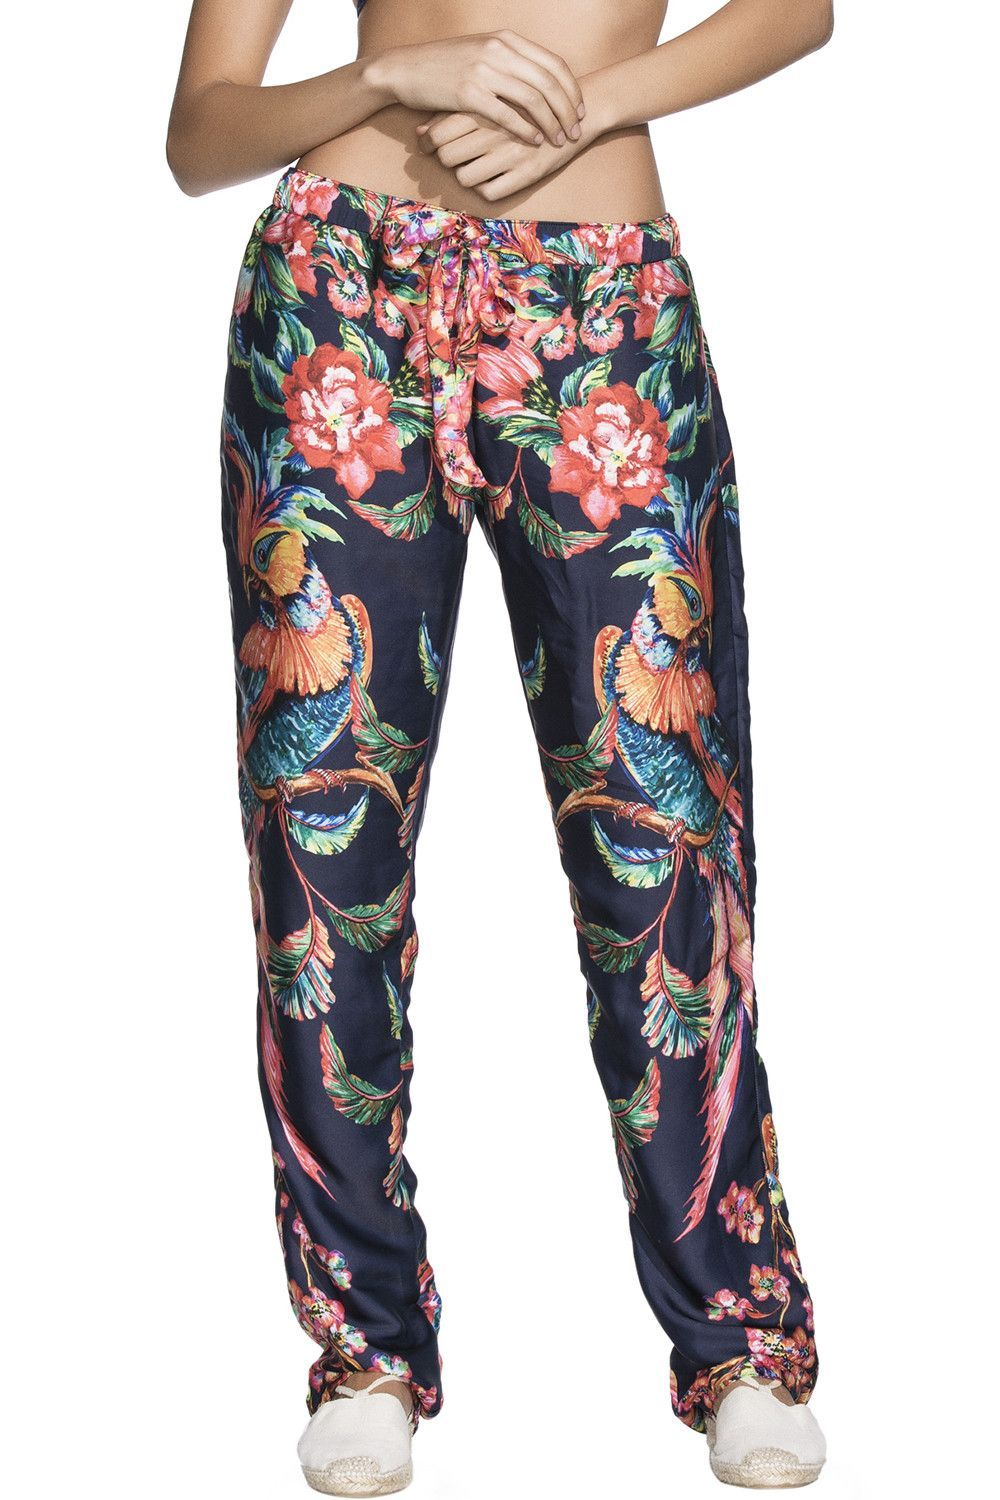 Bendito Cacatua Pants in Windy Birds